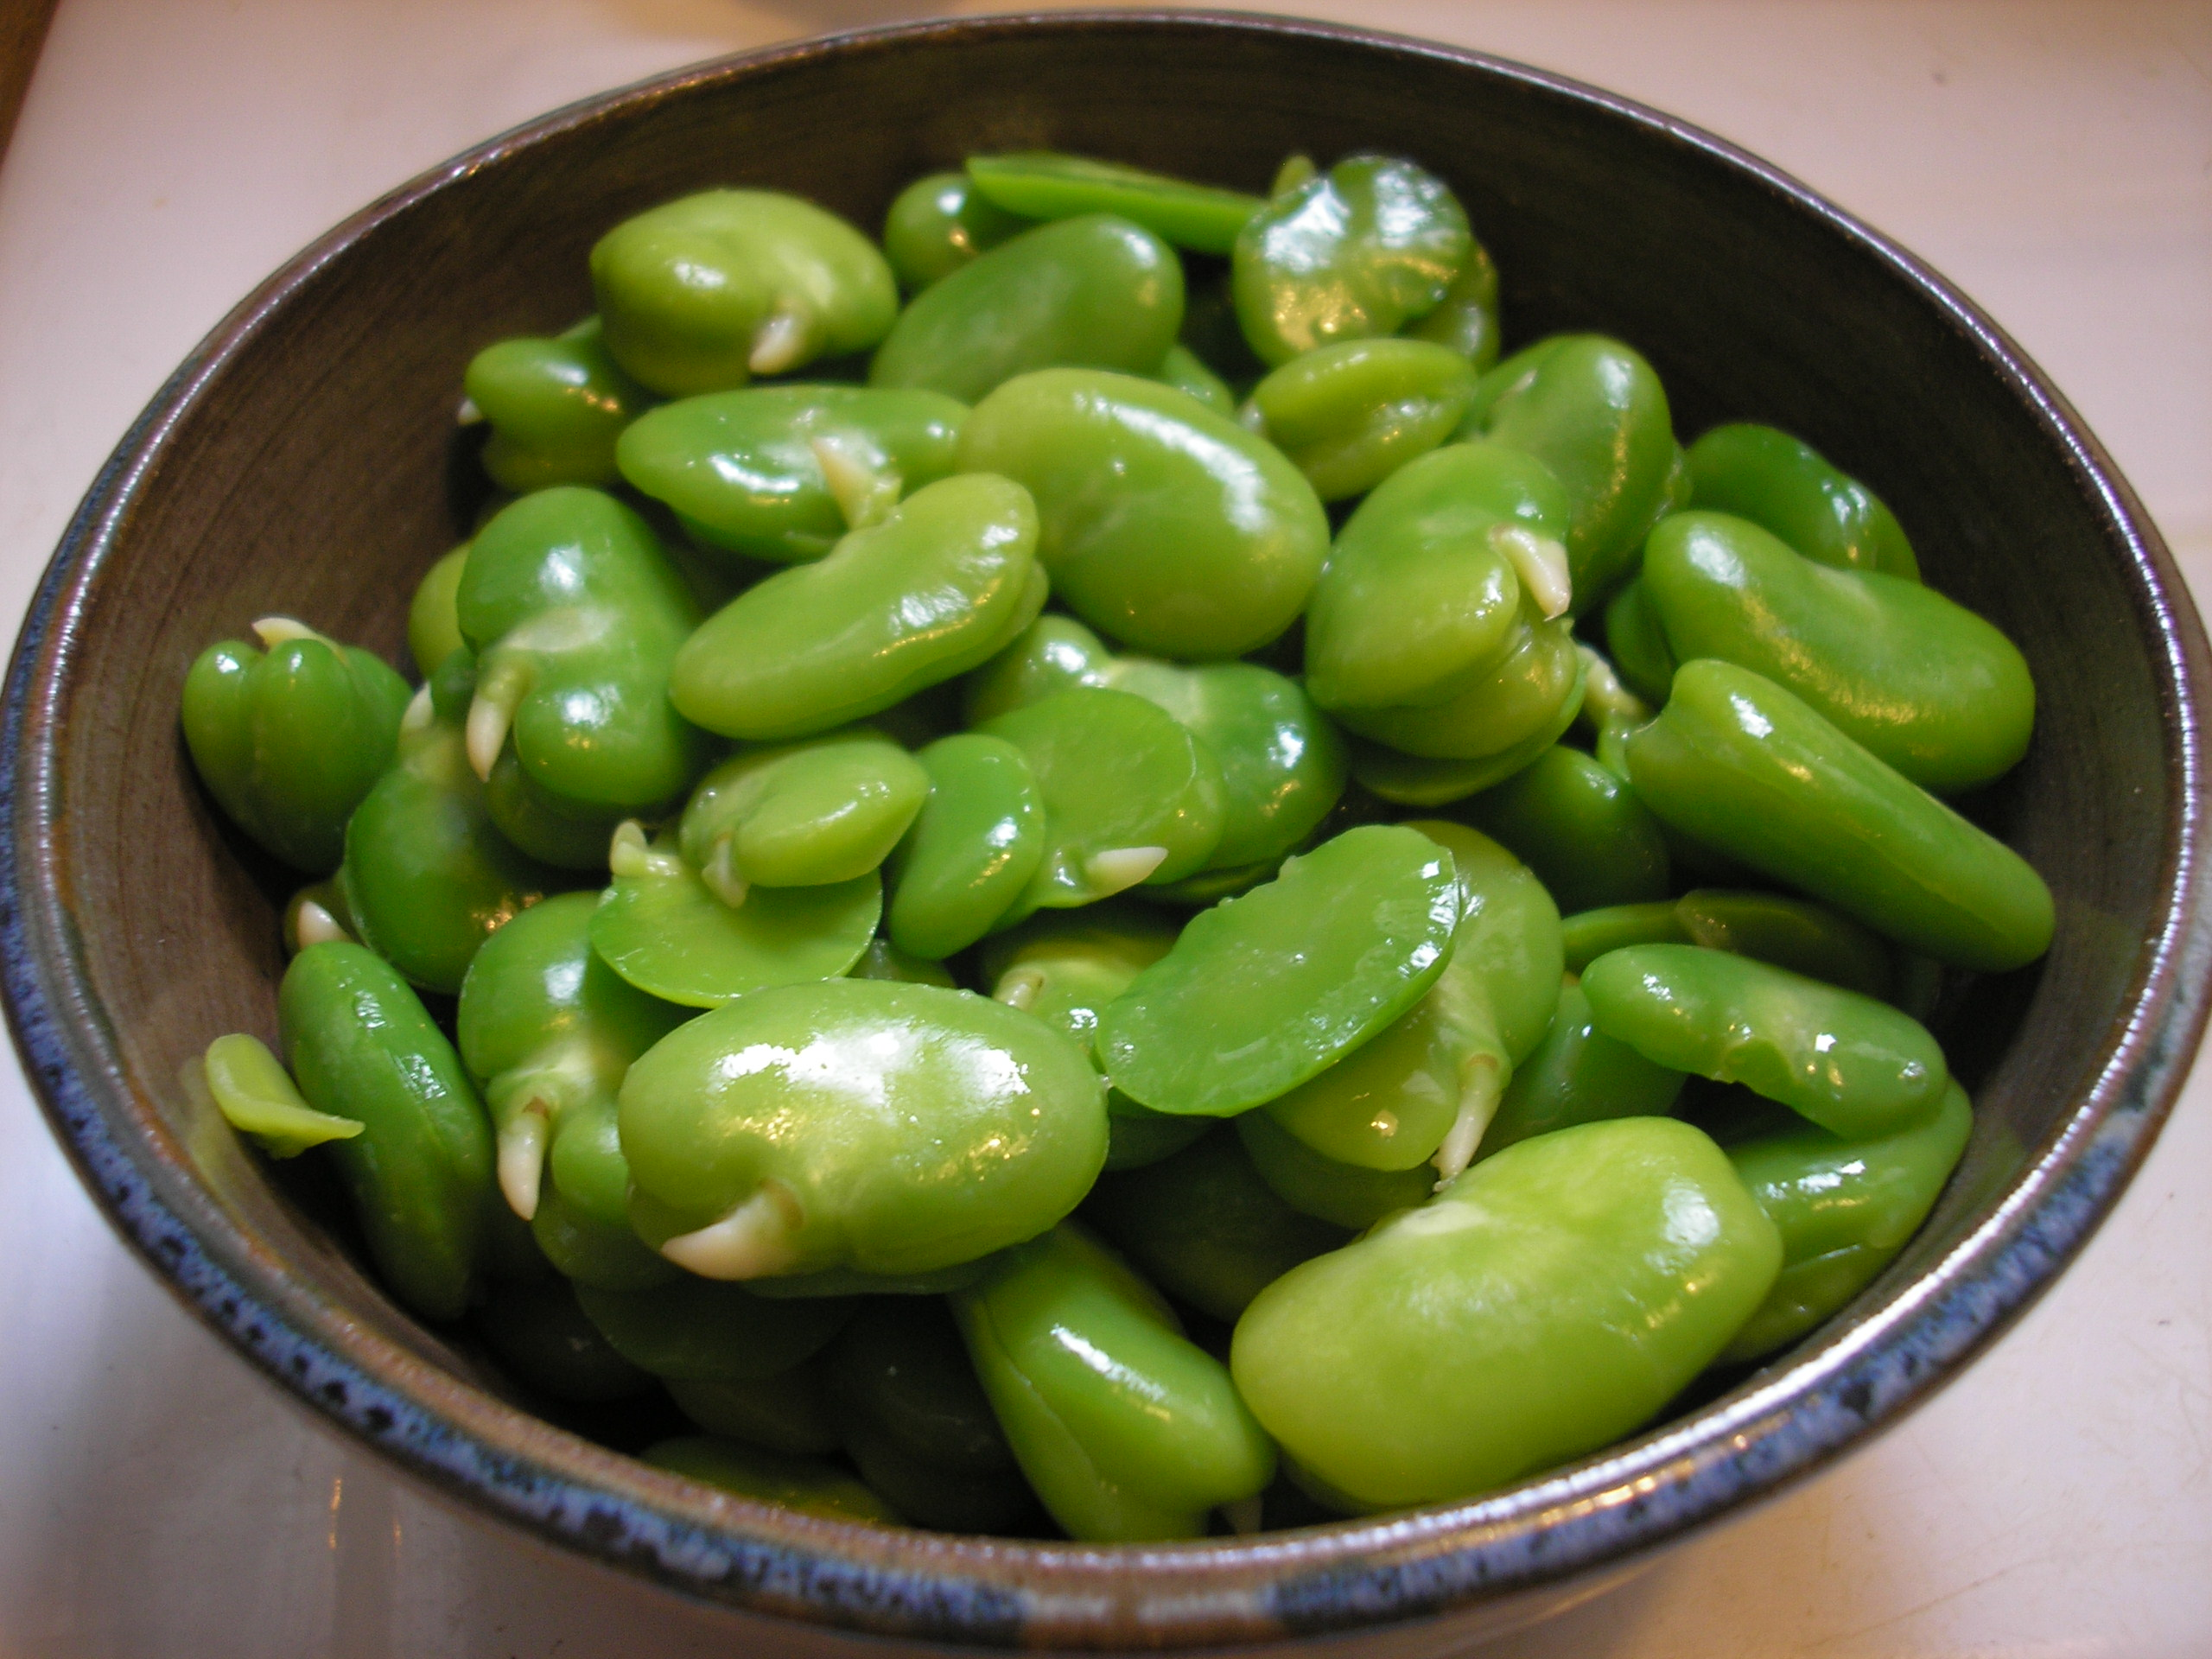 How to cook fava beans fairview gardens harvest shares for How to cook fresh lima beans from garden